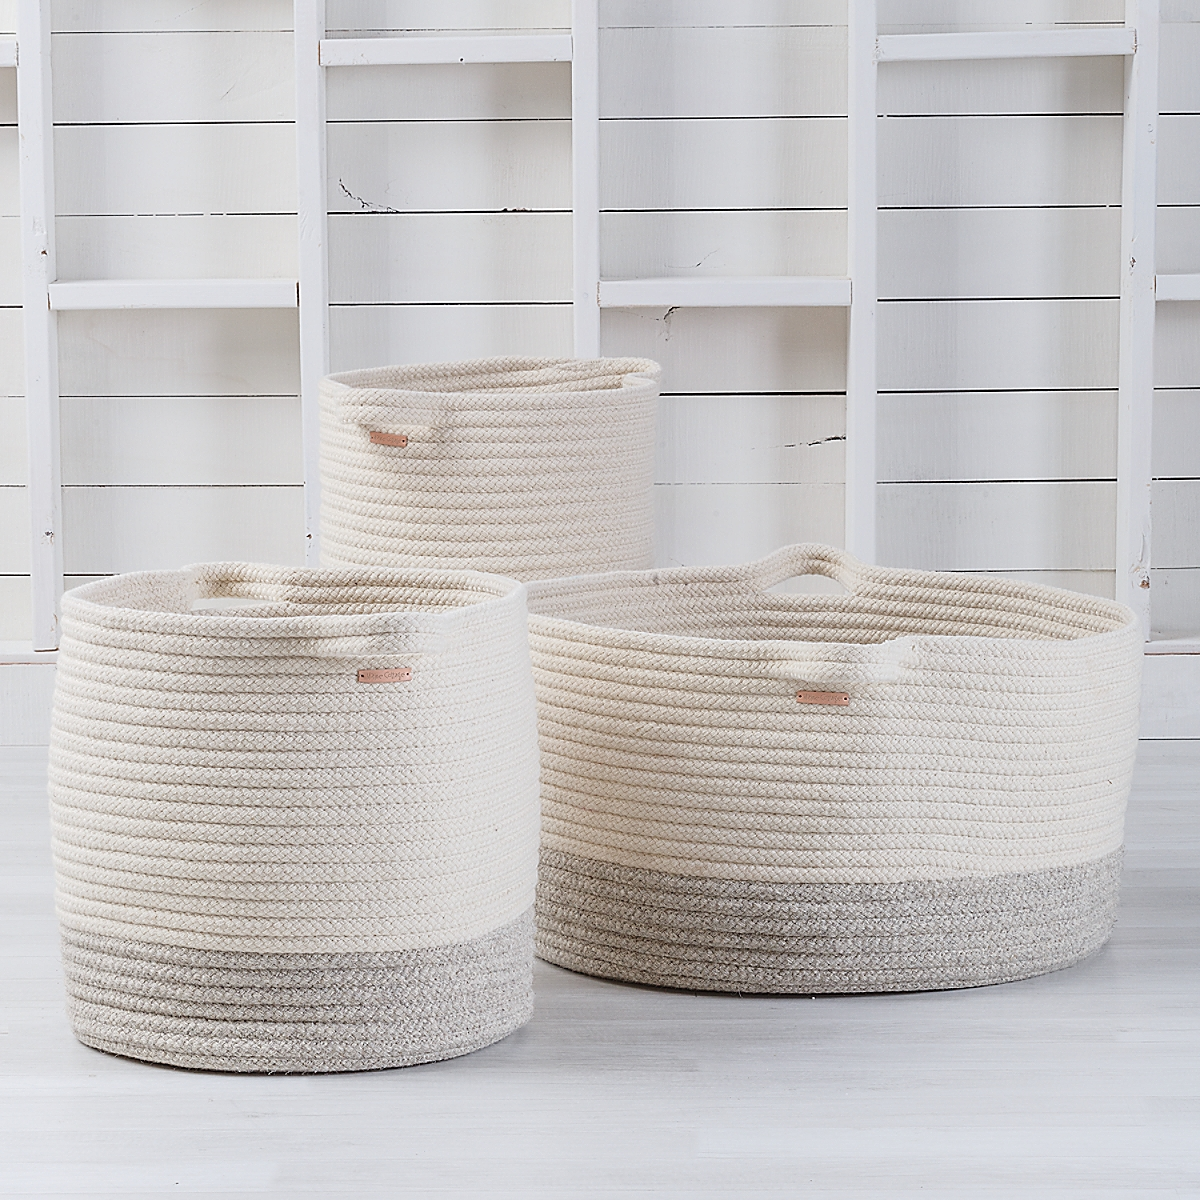 Braided Wool Basket - Two Tone